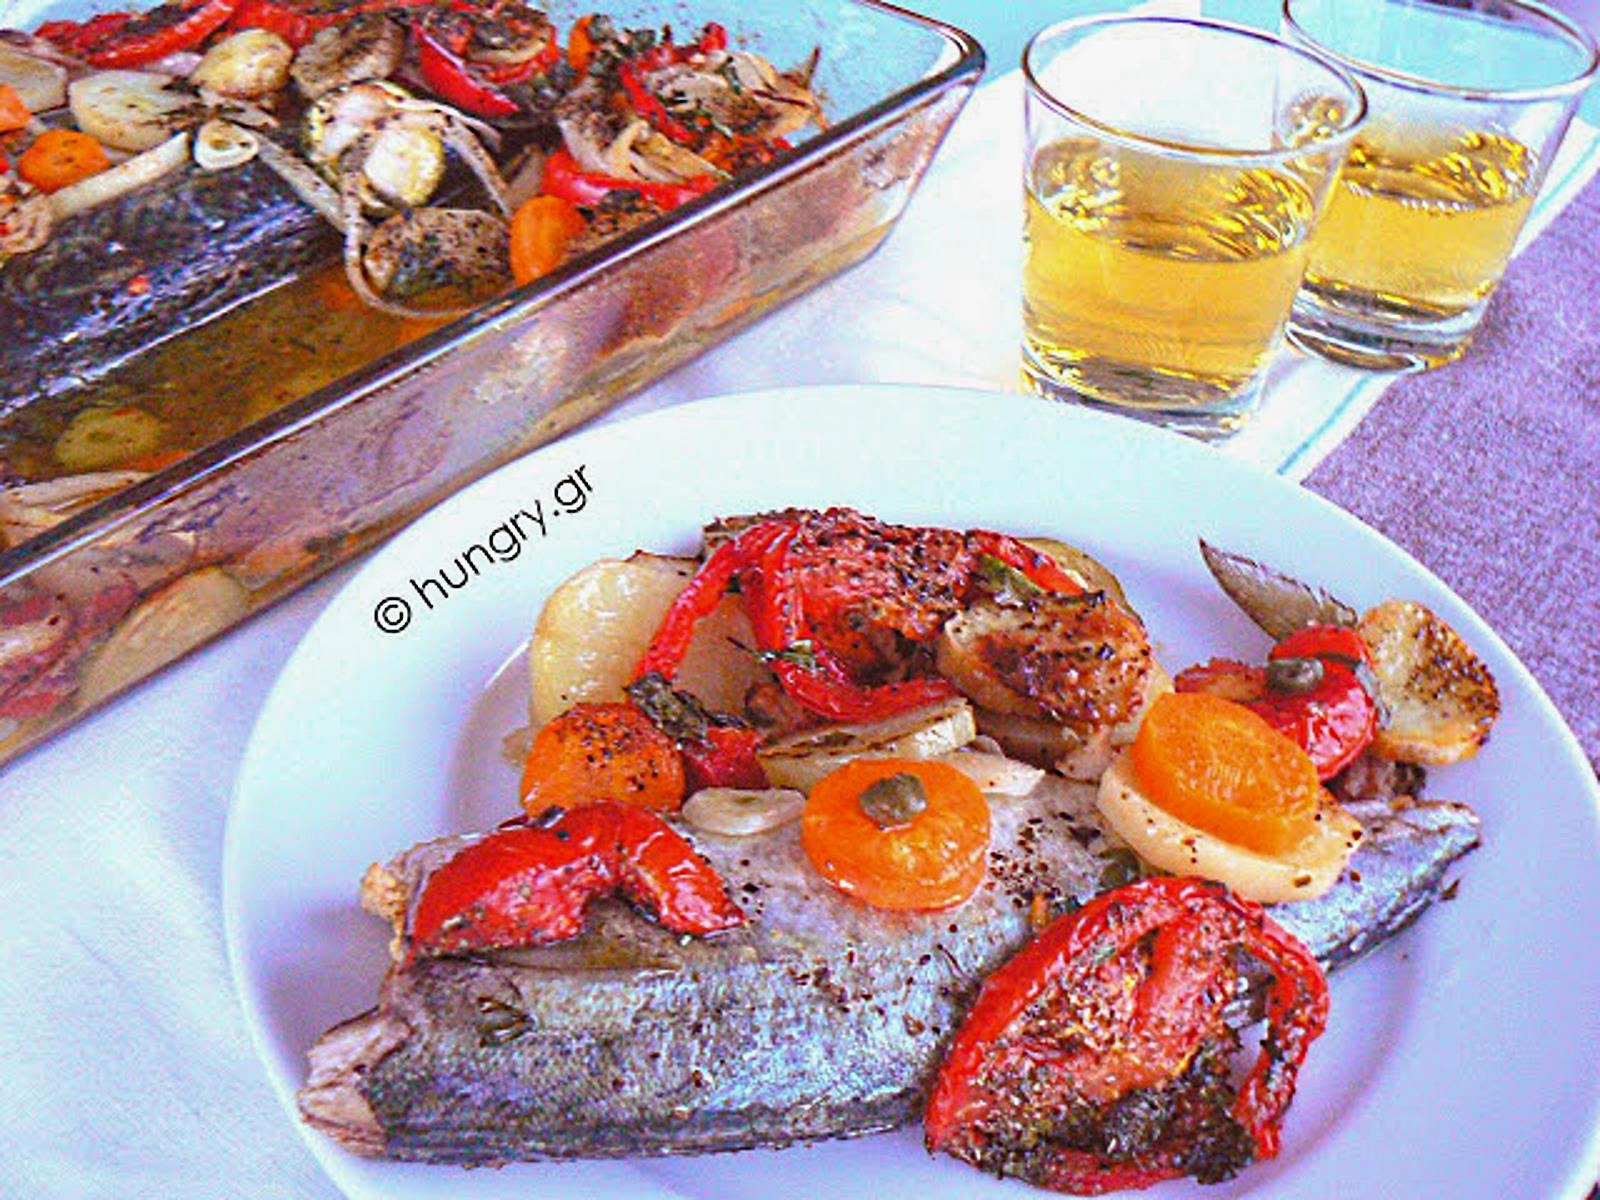 Oven Baked Mackerel with Vegetables